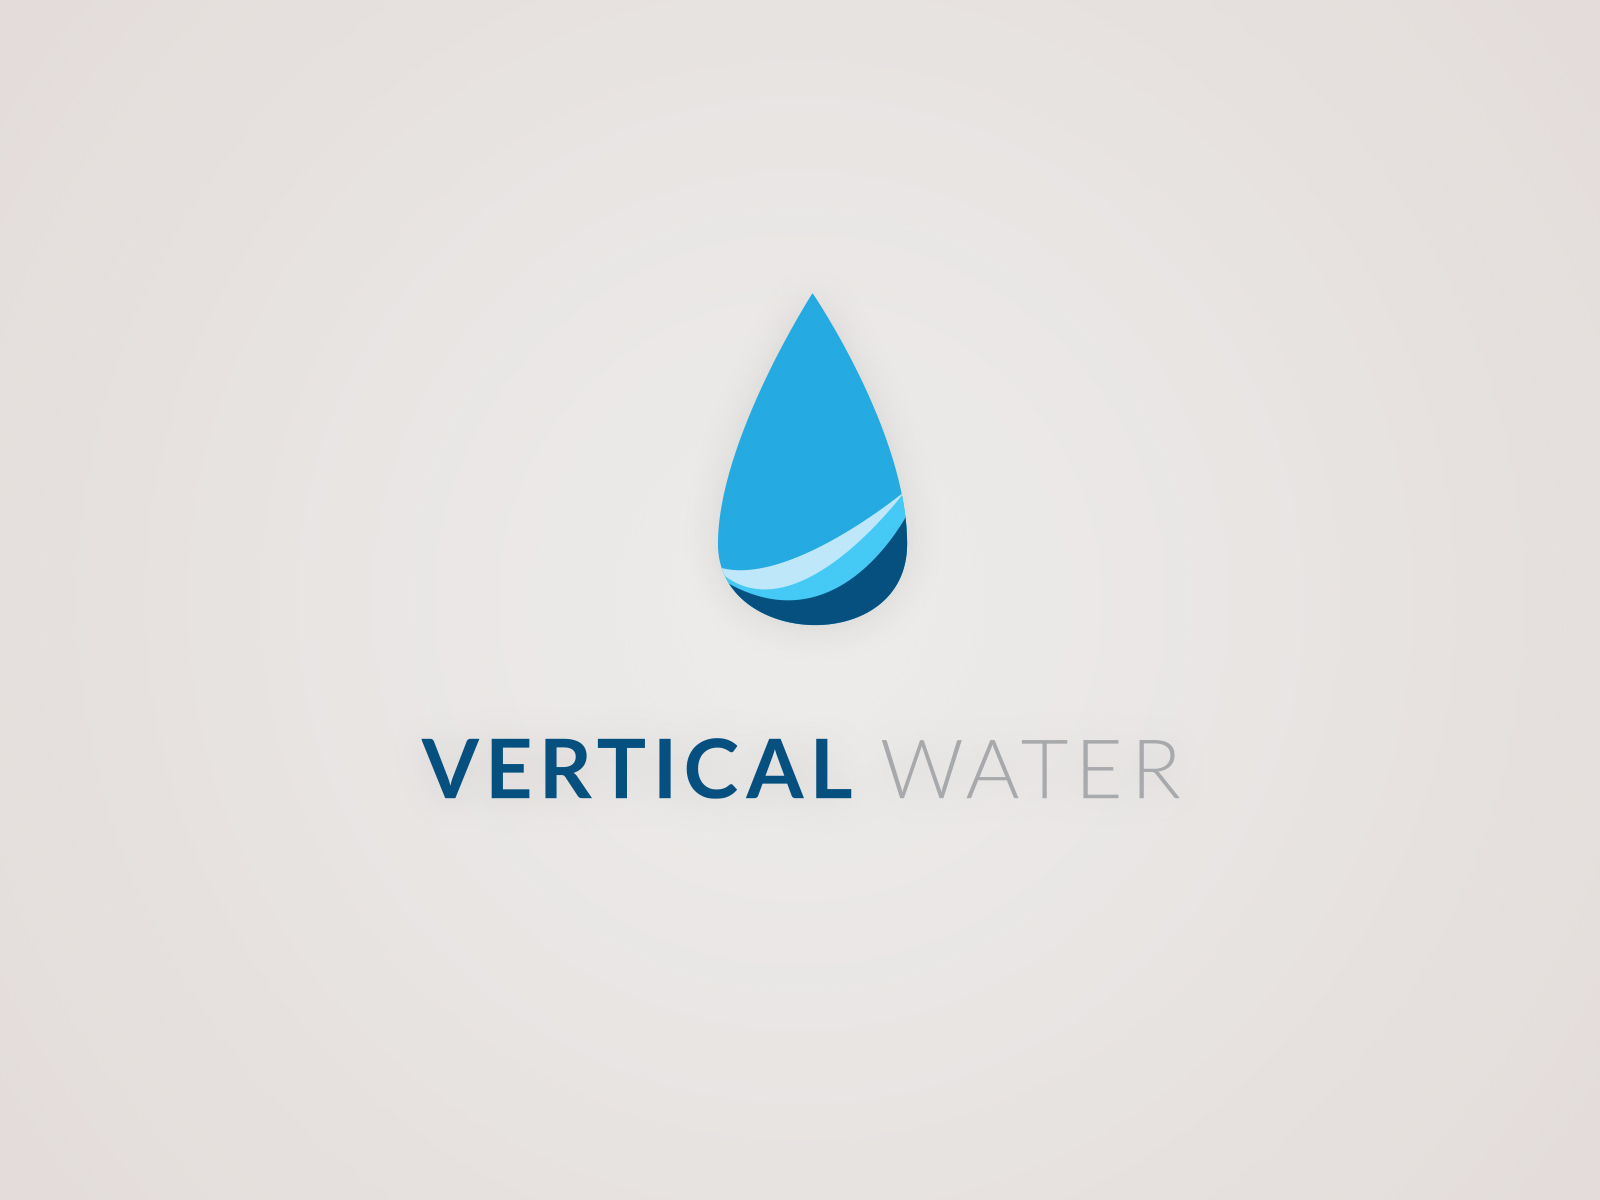 Vertical Water